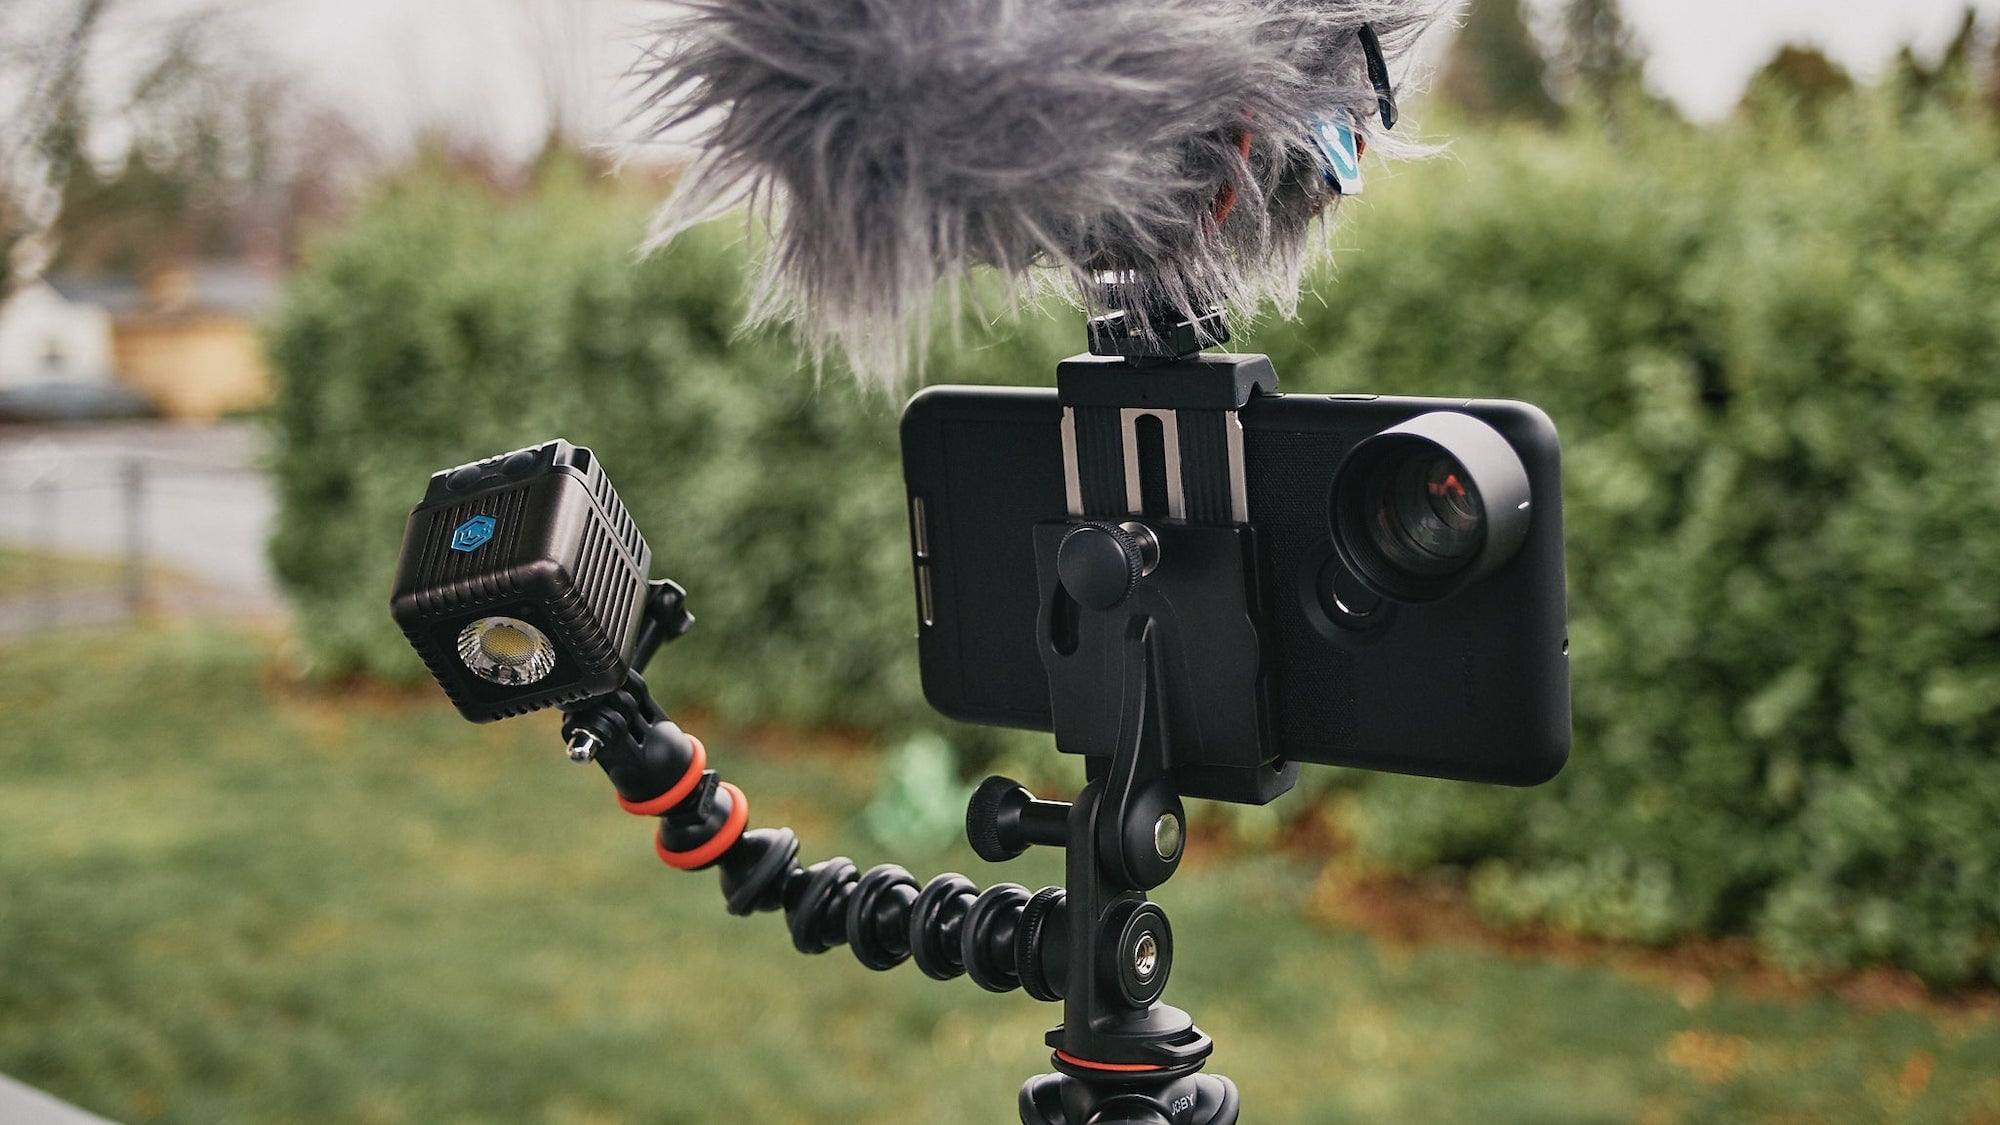 JOBY GorillaPod Mobile Rig Smartphone Tripod has spots for lights and a microphone